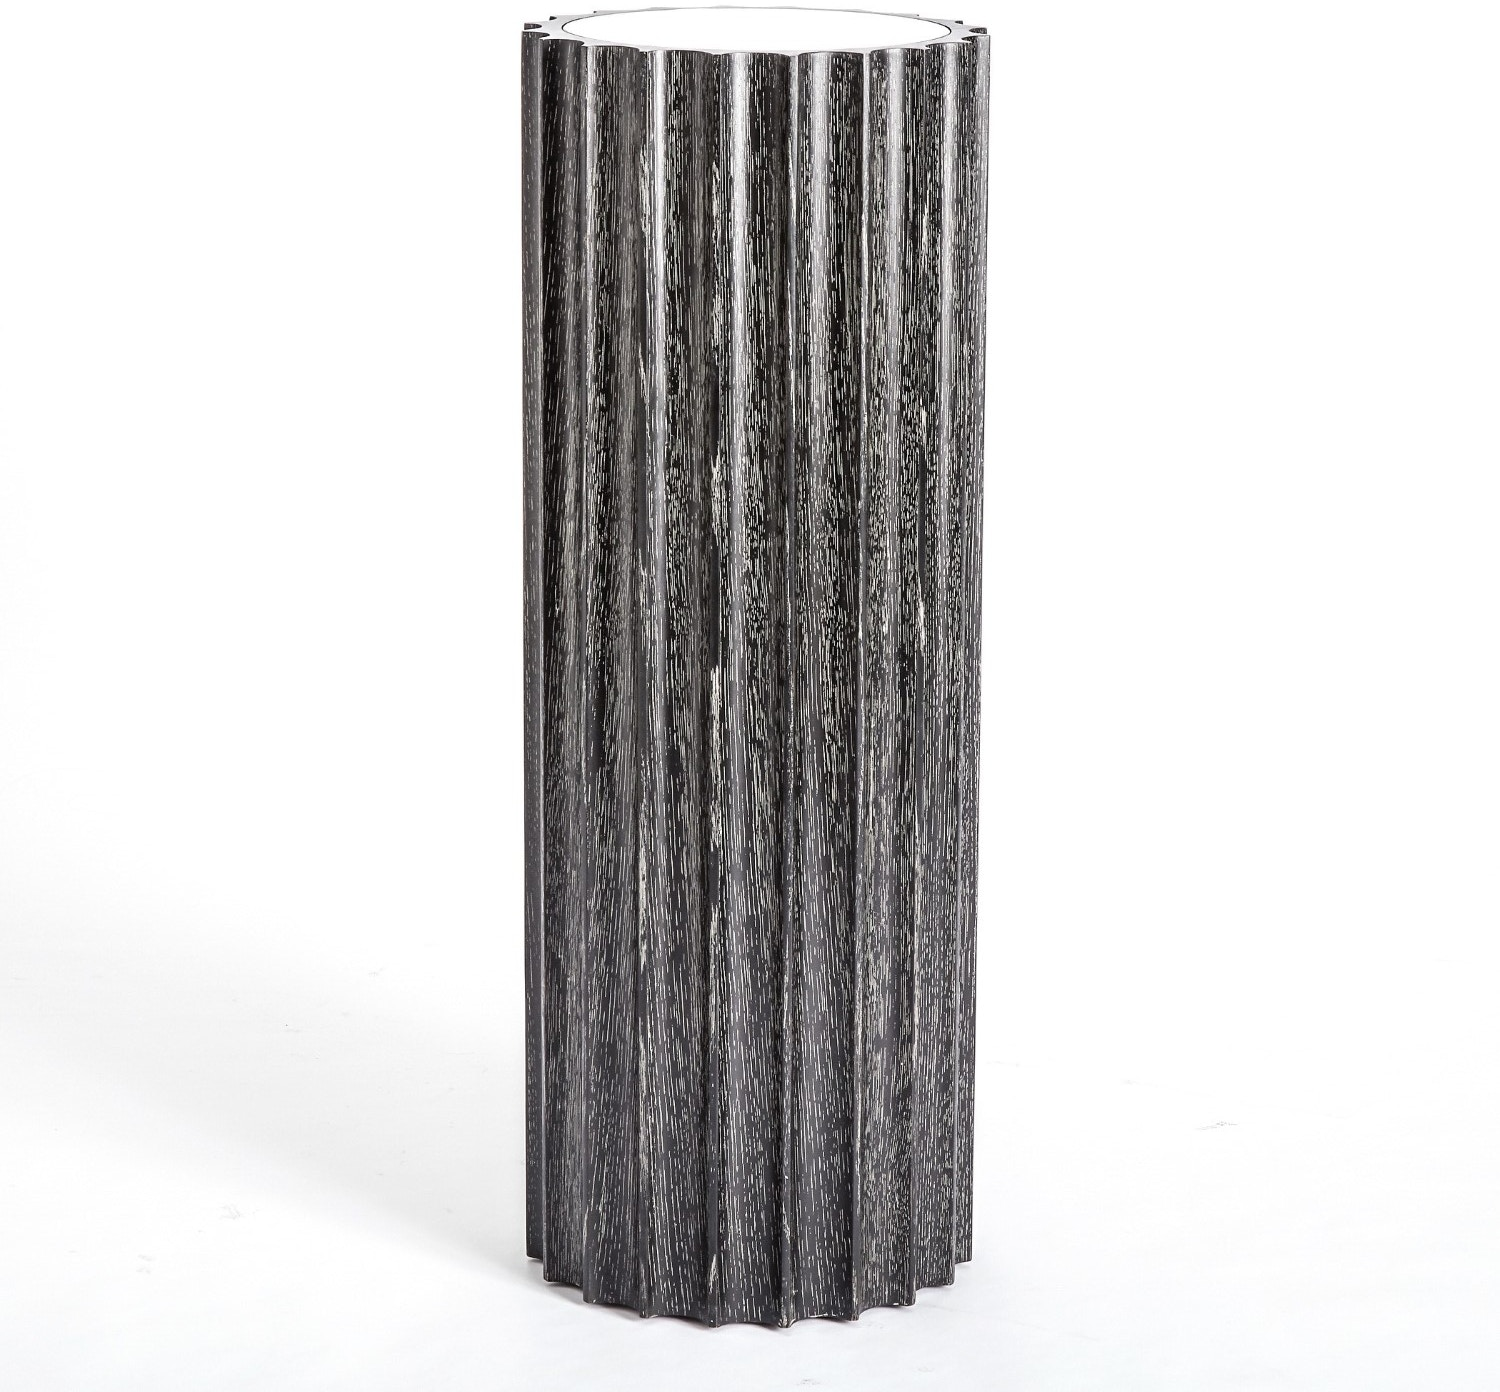 Global Views Accessories Reflective Column Pedestal Black  : 2564 from www.finessehomeliving.com size 1024 x 768 jpeg 36kB